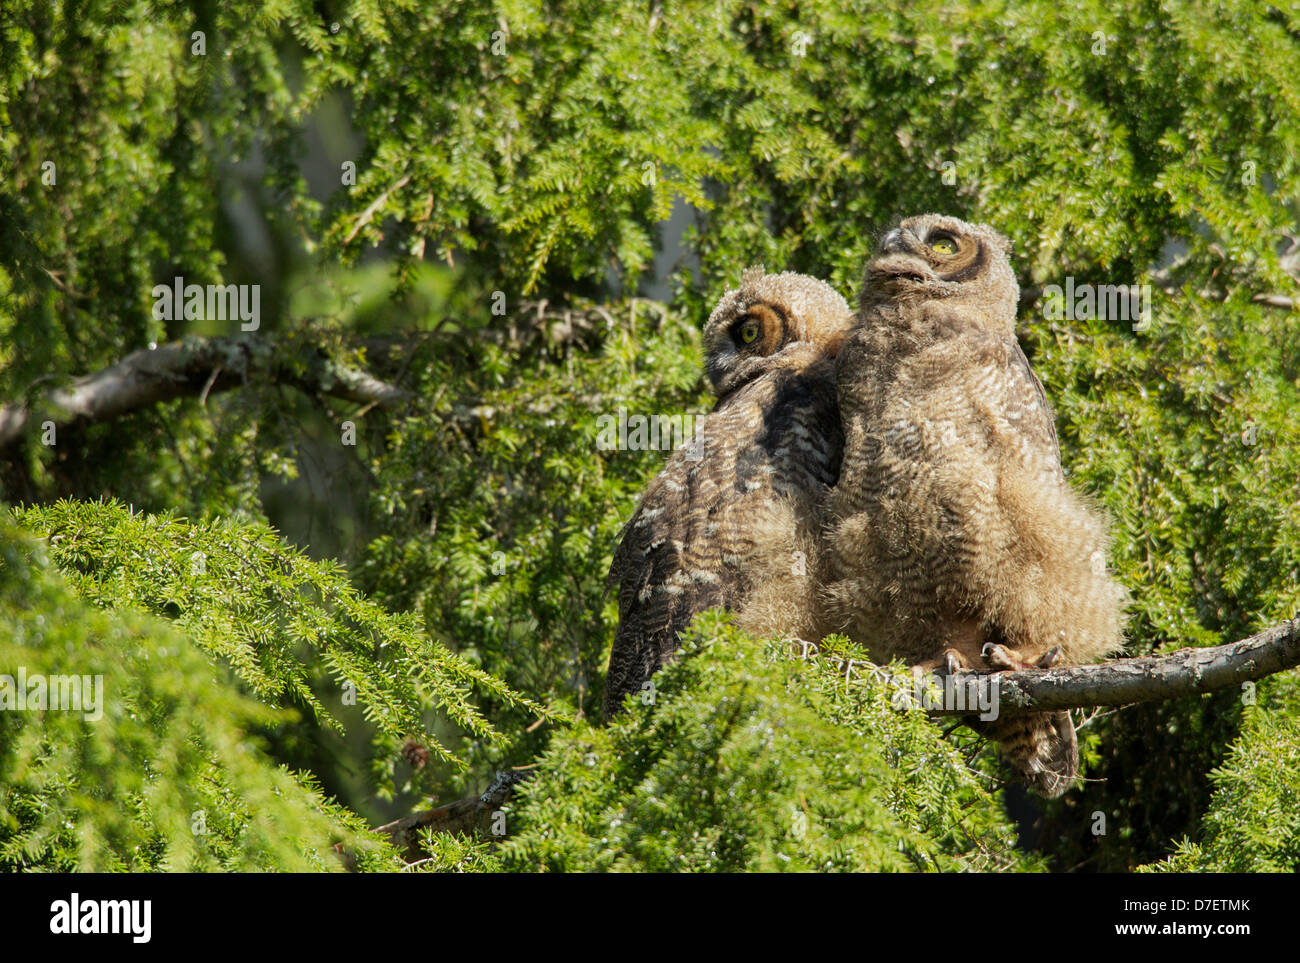 Great horned owl owlet fledglings perched in fir tree-Victoria, Vancouver Island British Columbia, Canada. - Stock Image